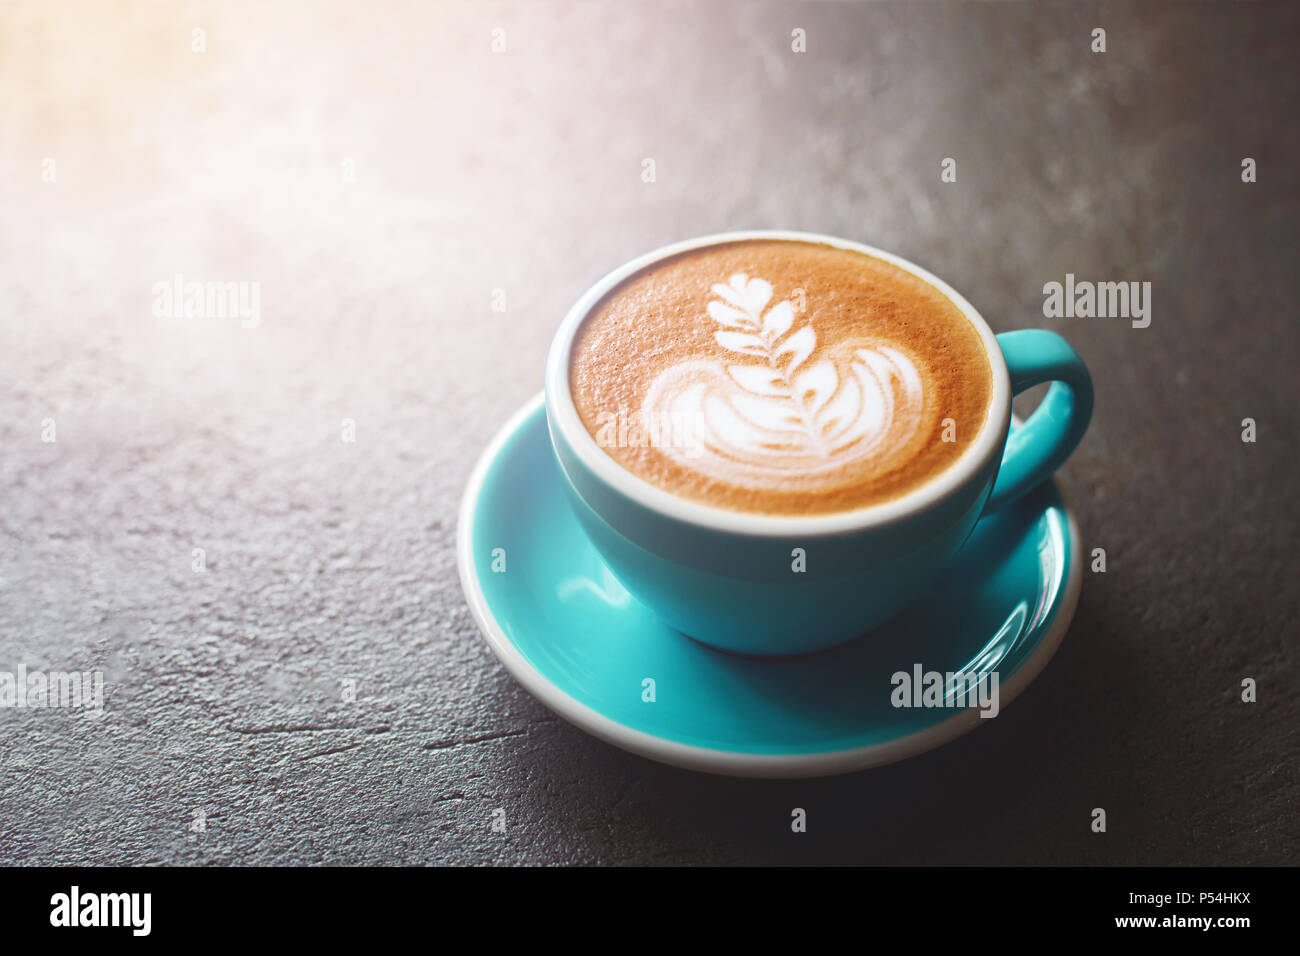 A cup of cappuccino with beautiful latte art on stone table. Morning mood concept. - Stock Image